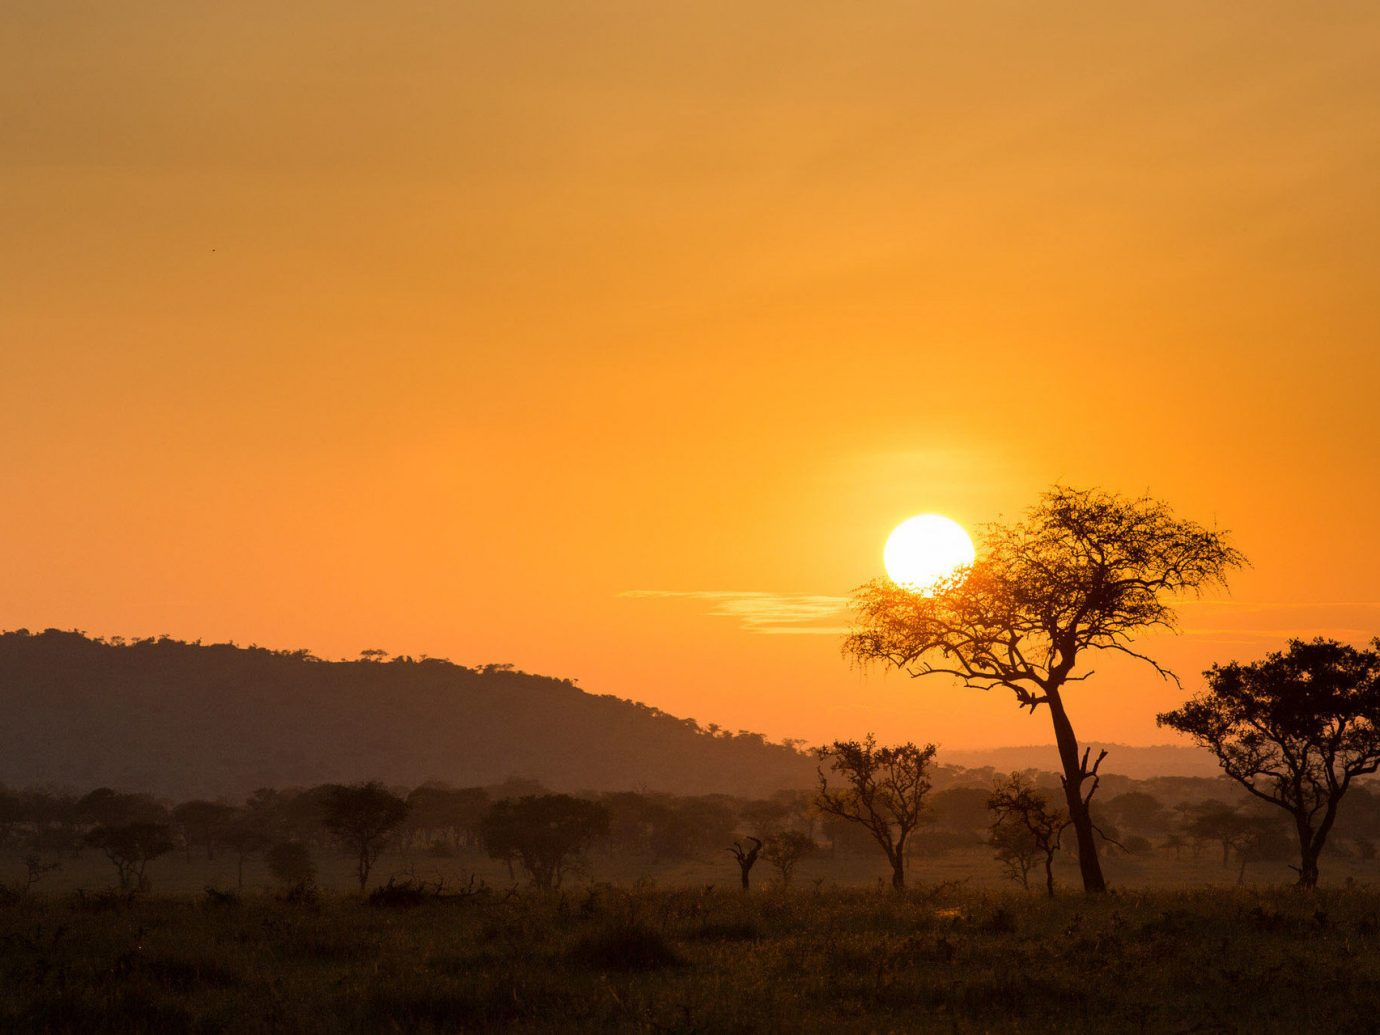 Trip Ideas sky outdoor grass Sunset Nature sunrise atmospheric phenomenon horizon red sky at morning dawn afterglow natural environment morning savanna field evening dusk Sun sunlight plain prairie astronomical object tree plant distance day